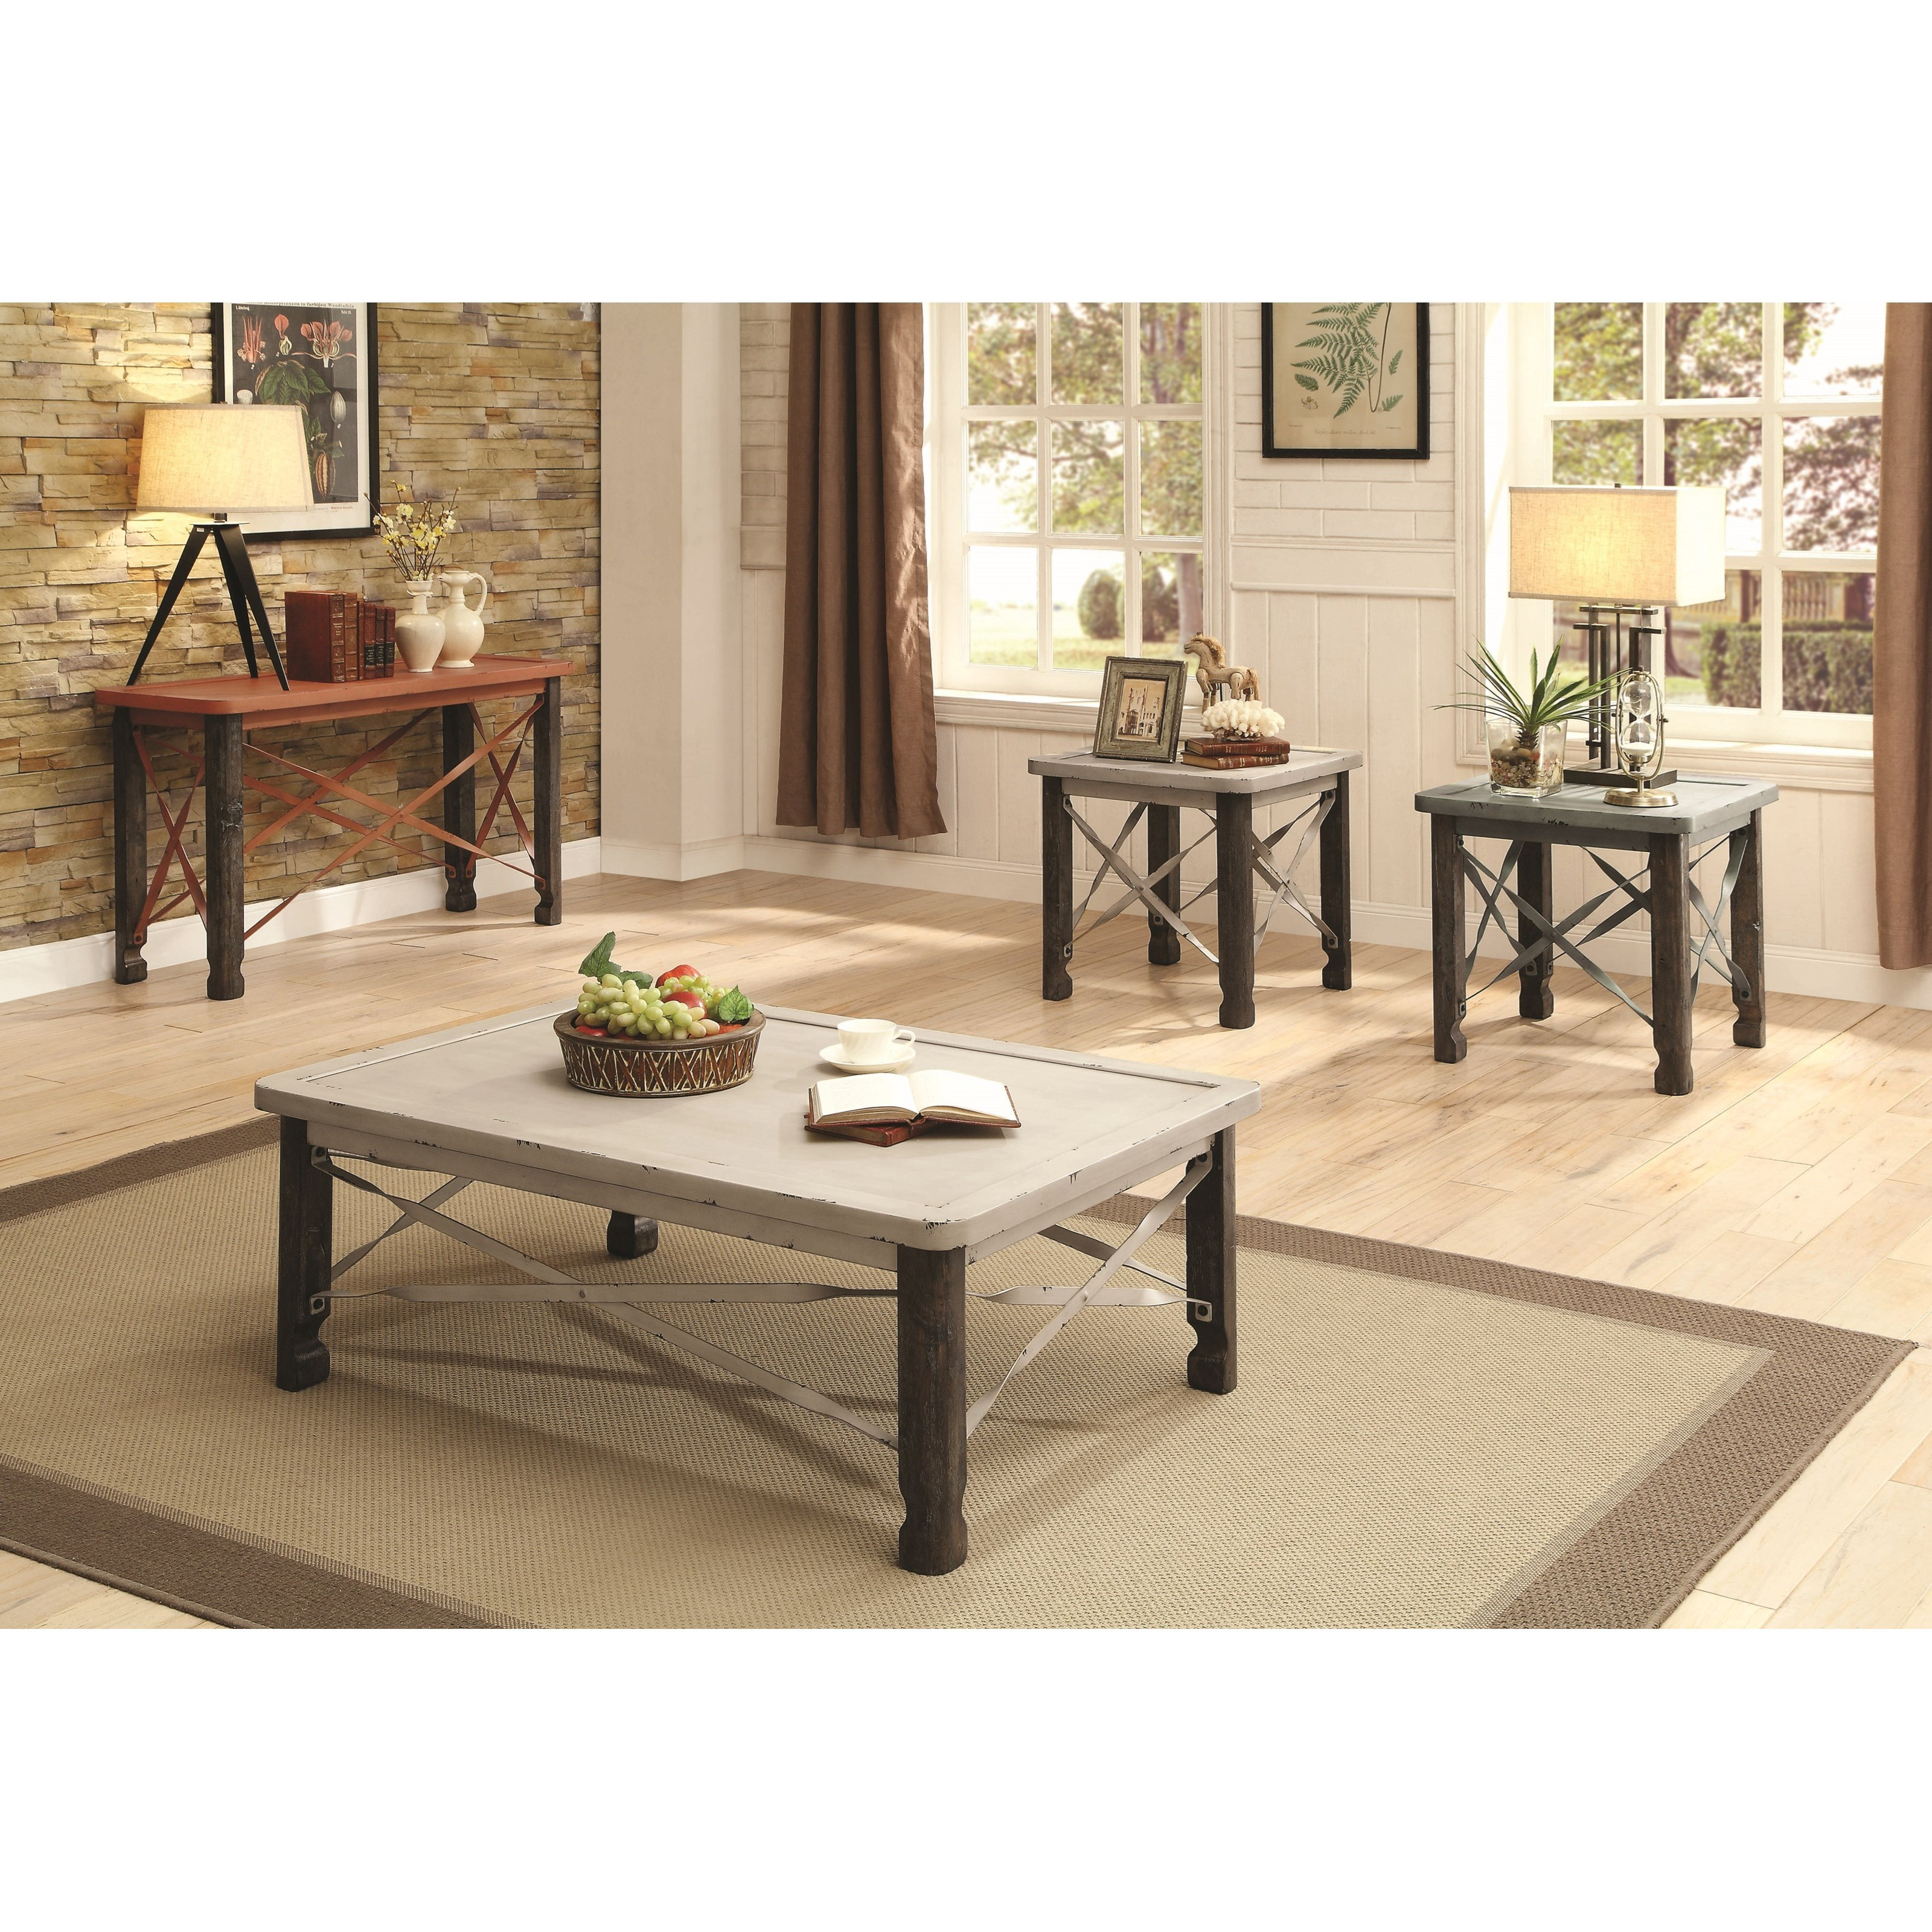 Coaster 700490 Occasional Table Group Value City Furniture Occasional Groups